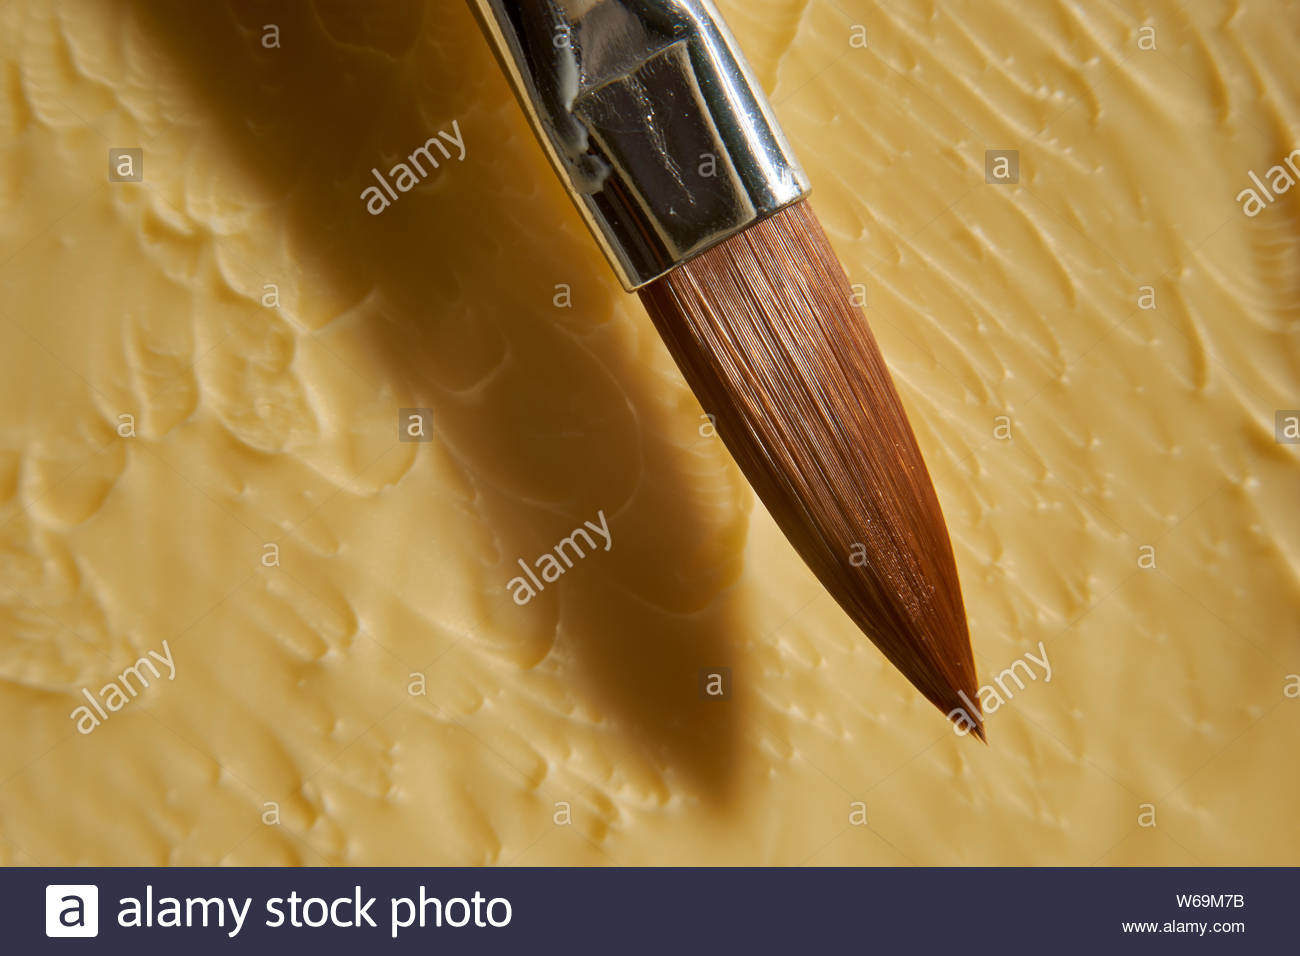 A macro image of the tip of an artist's paintbrush - the bristles